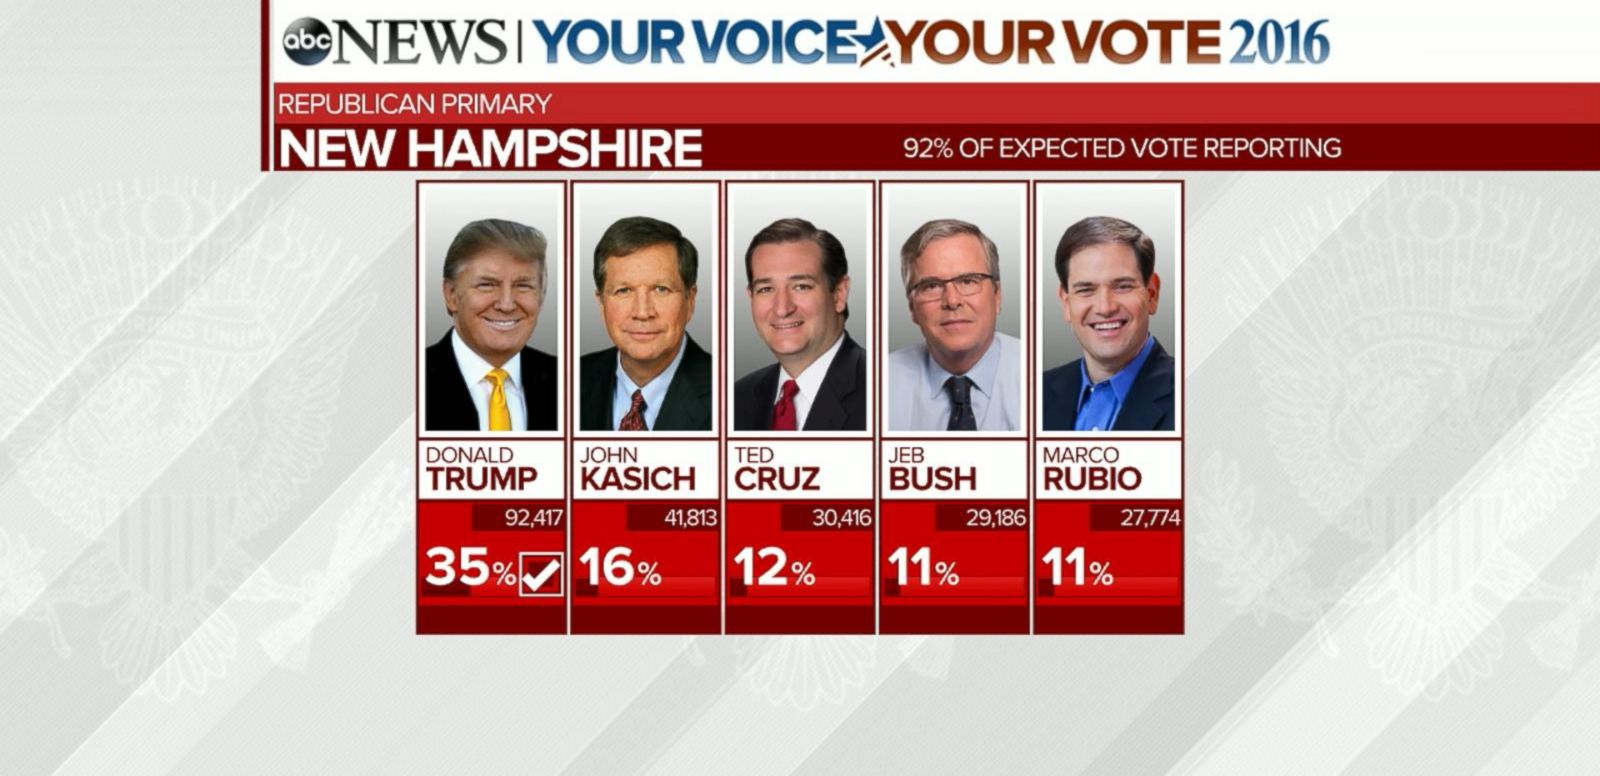 VIDEO: Analysis of the 2016 New Hampshire Presidential Primary Results